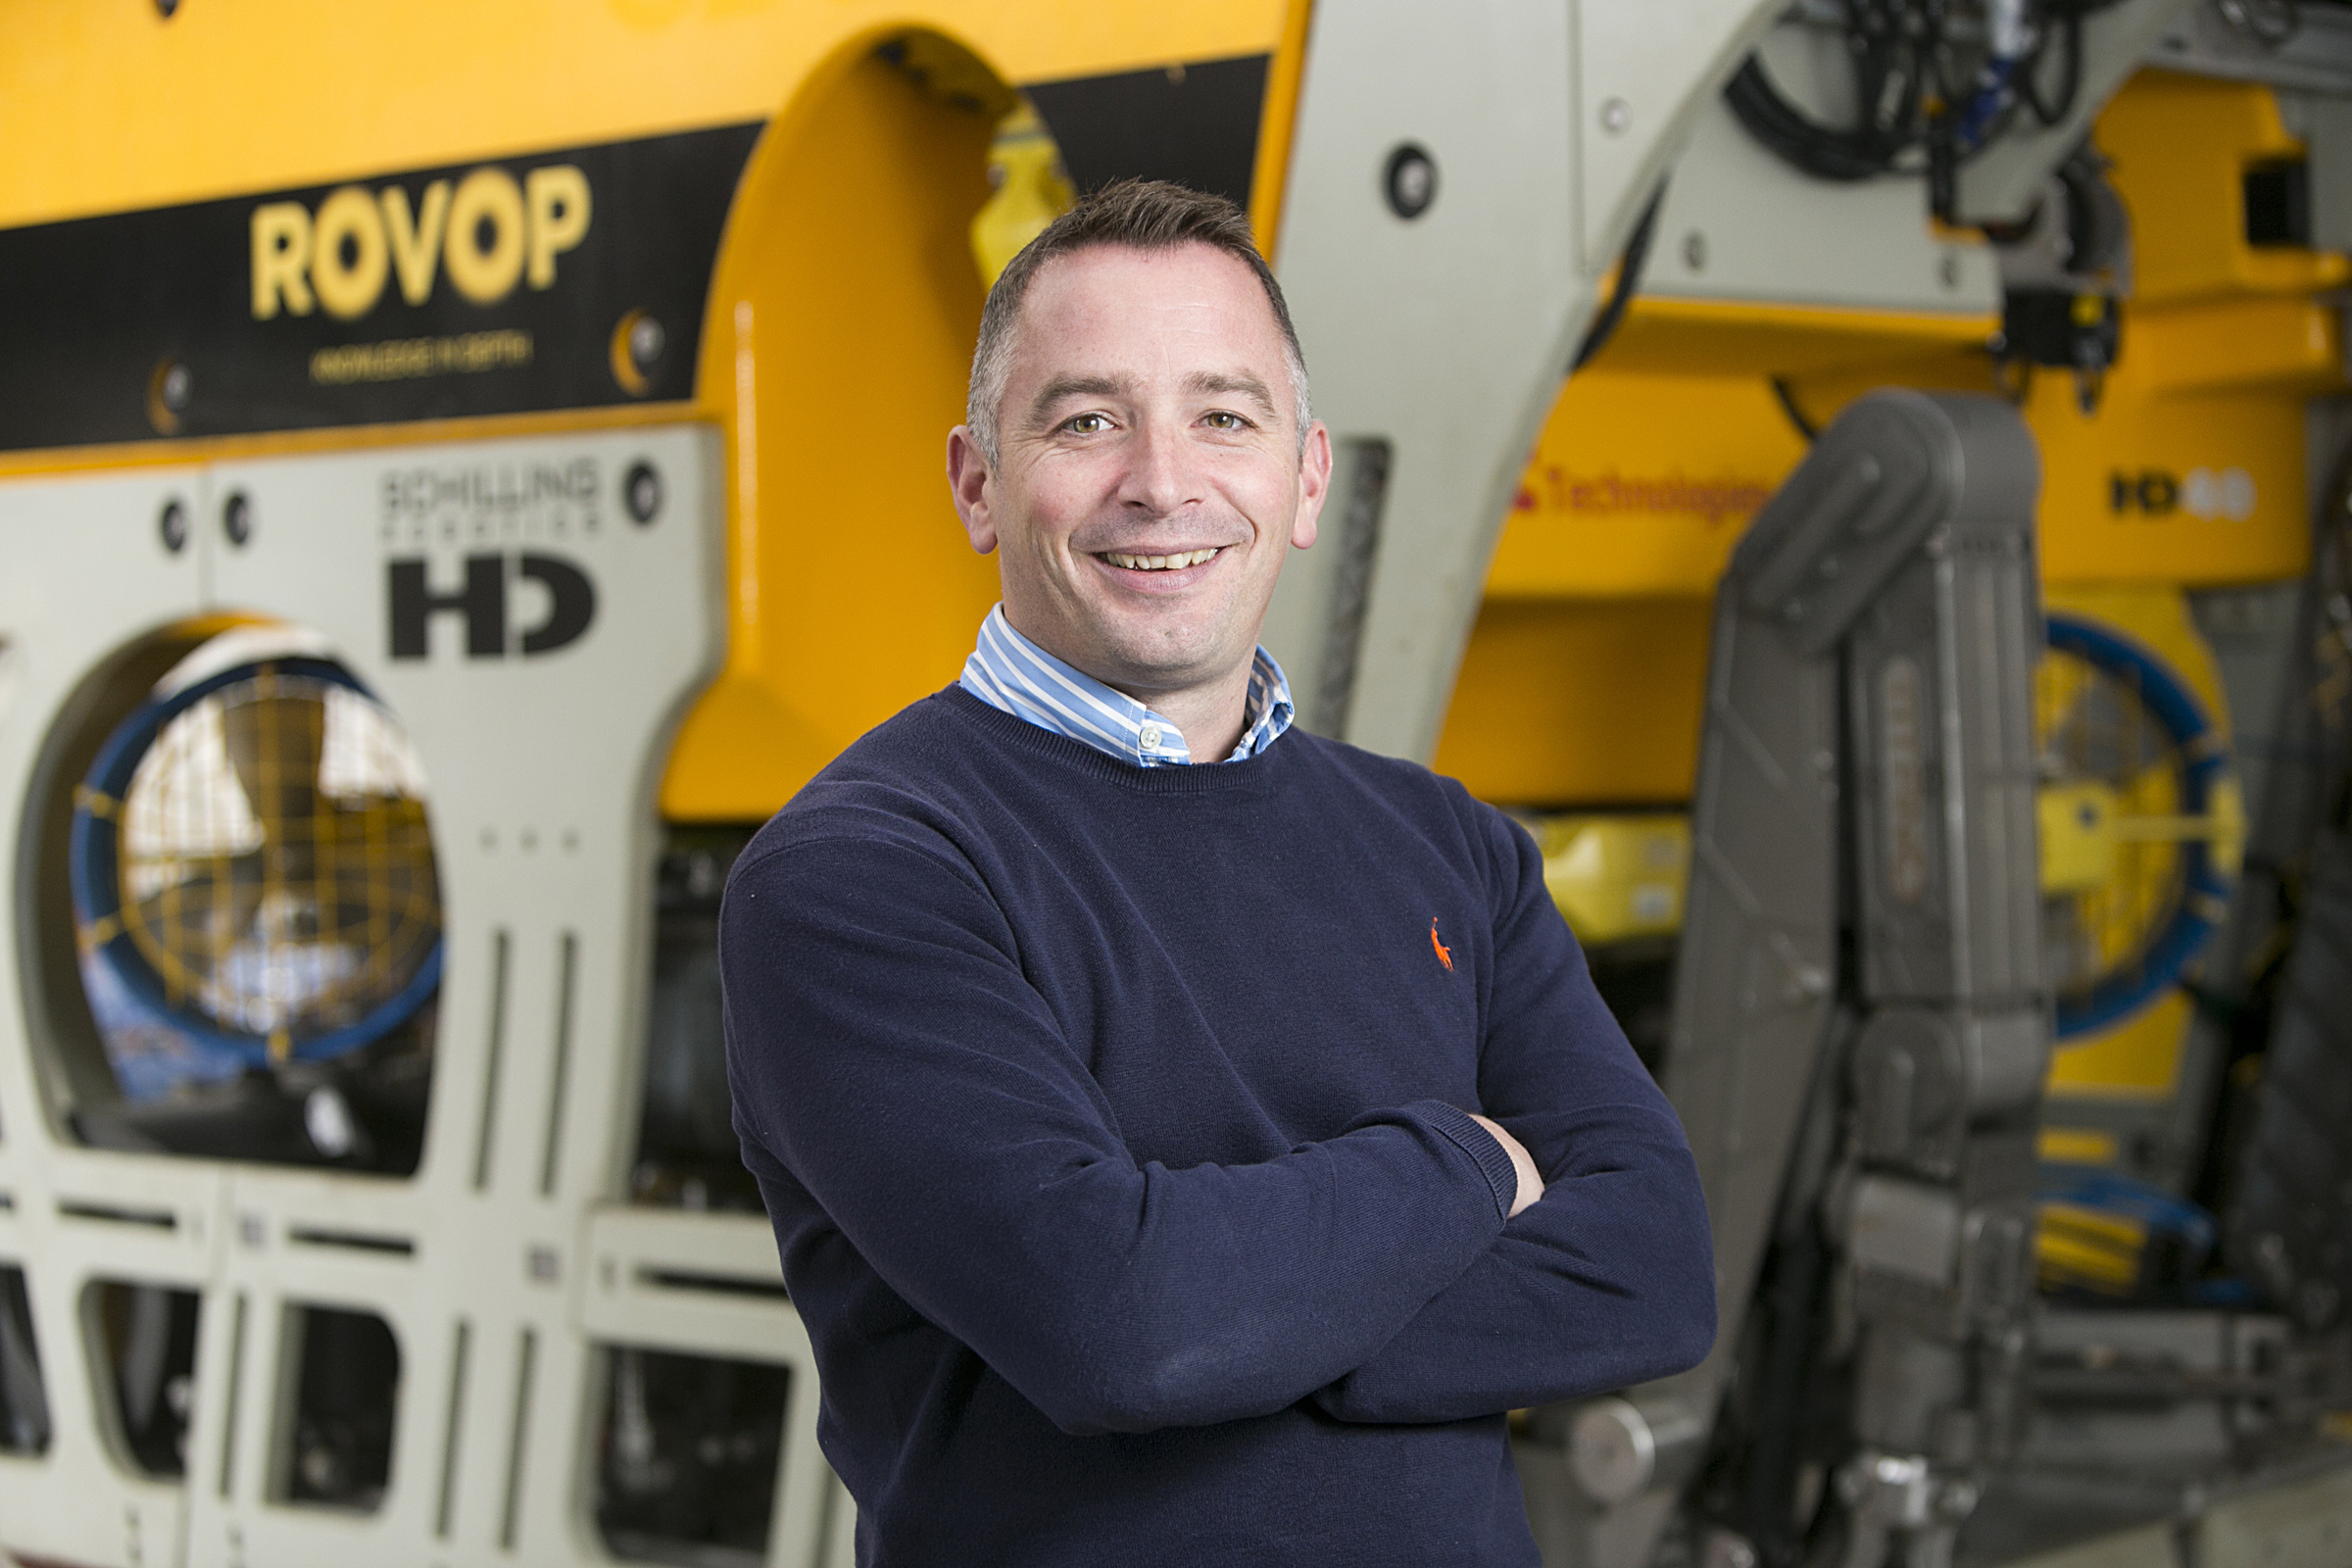 Euan Tait has been apponted as ROVOP's new commercial director